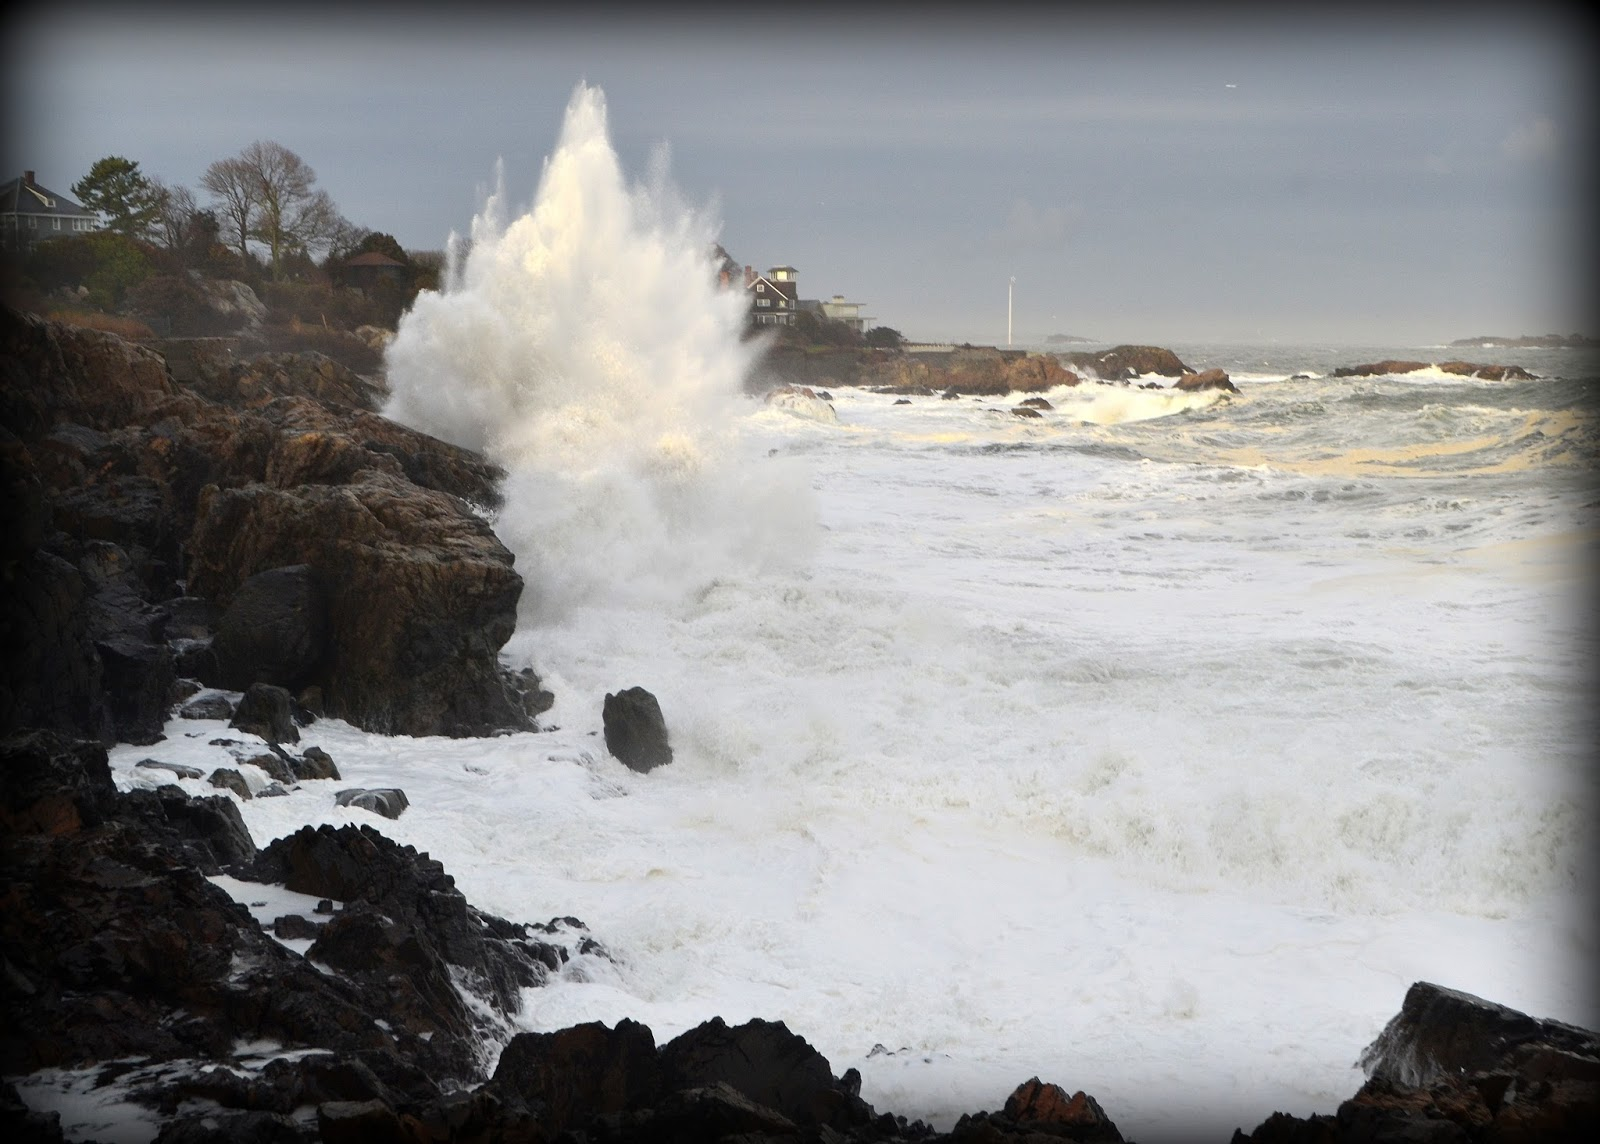 castle rock, marblehead, massachusetts, ocean, waves, surf